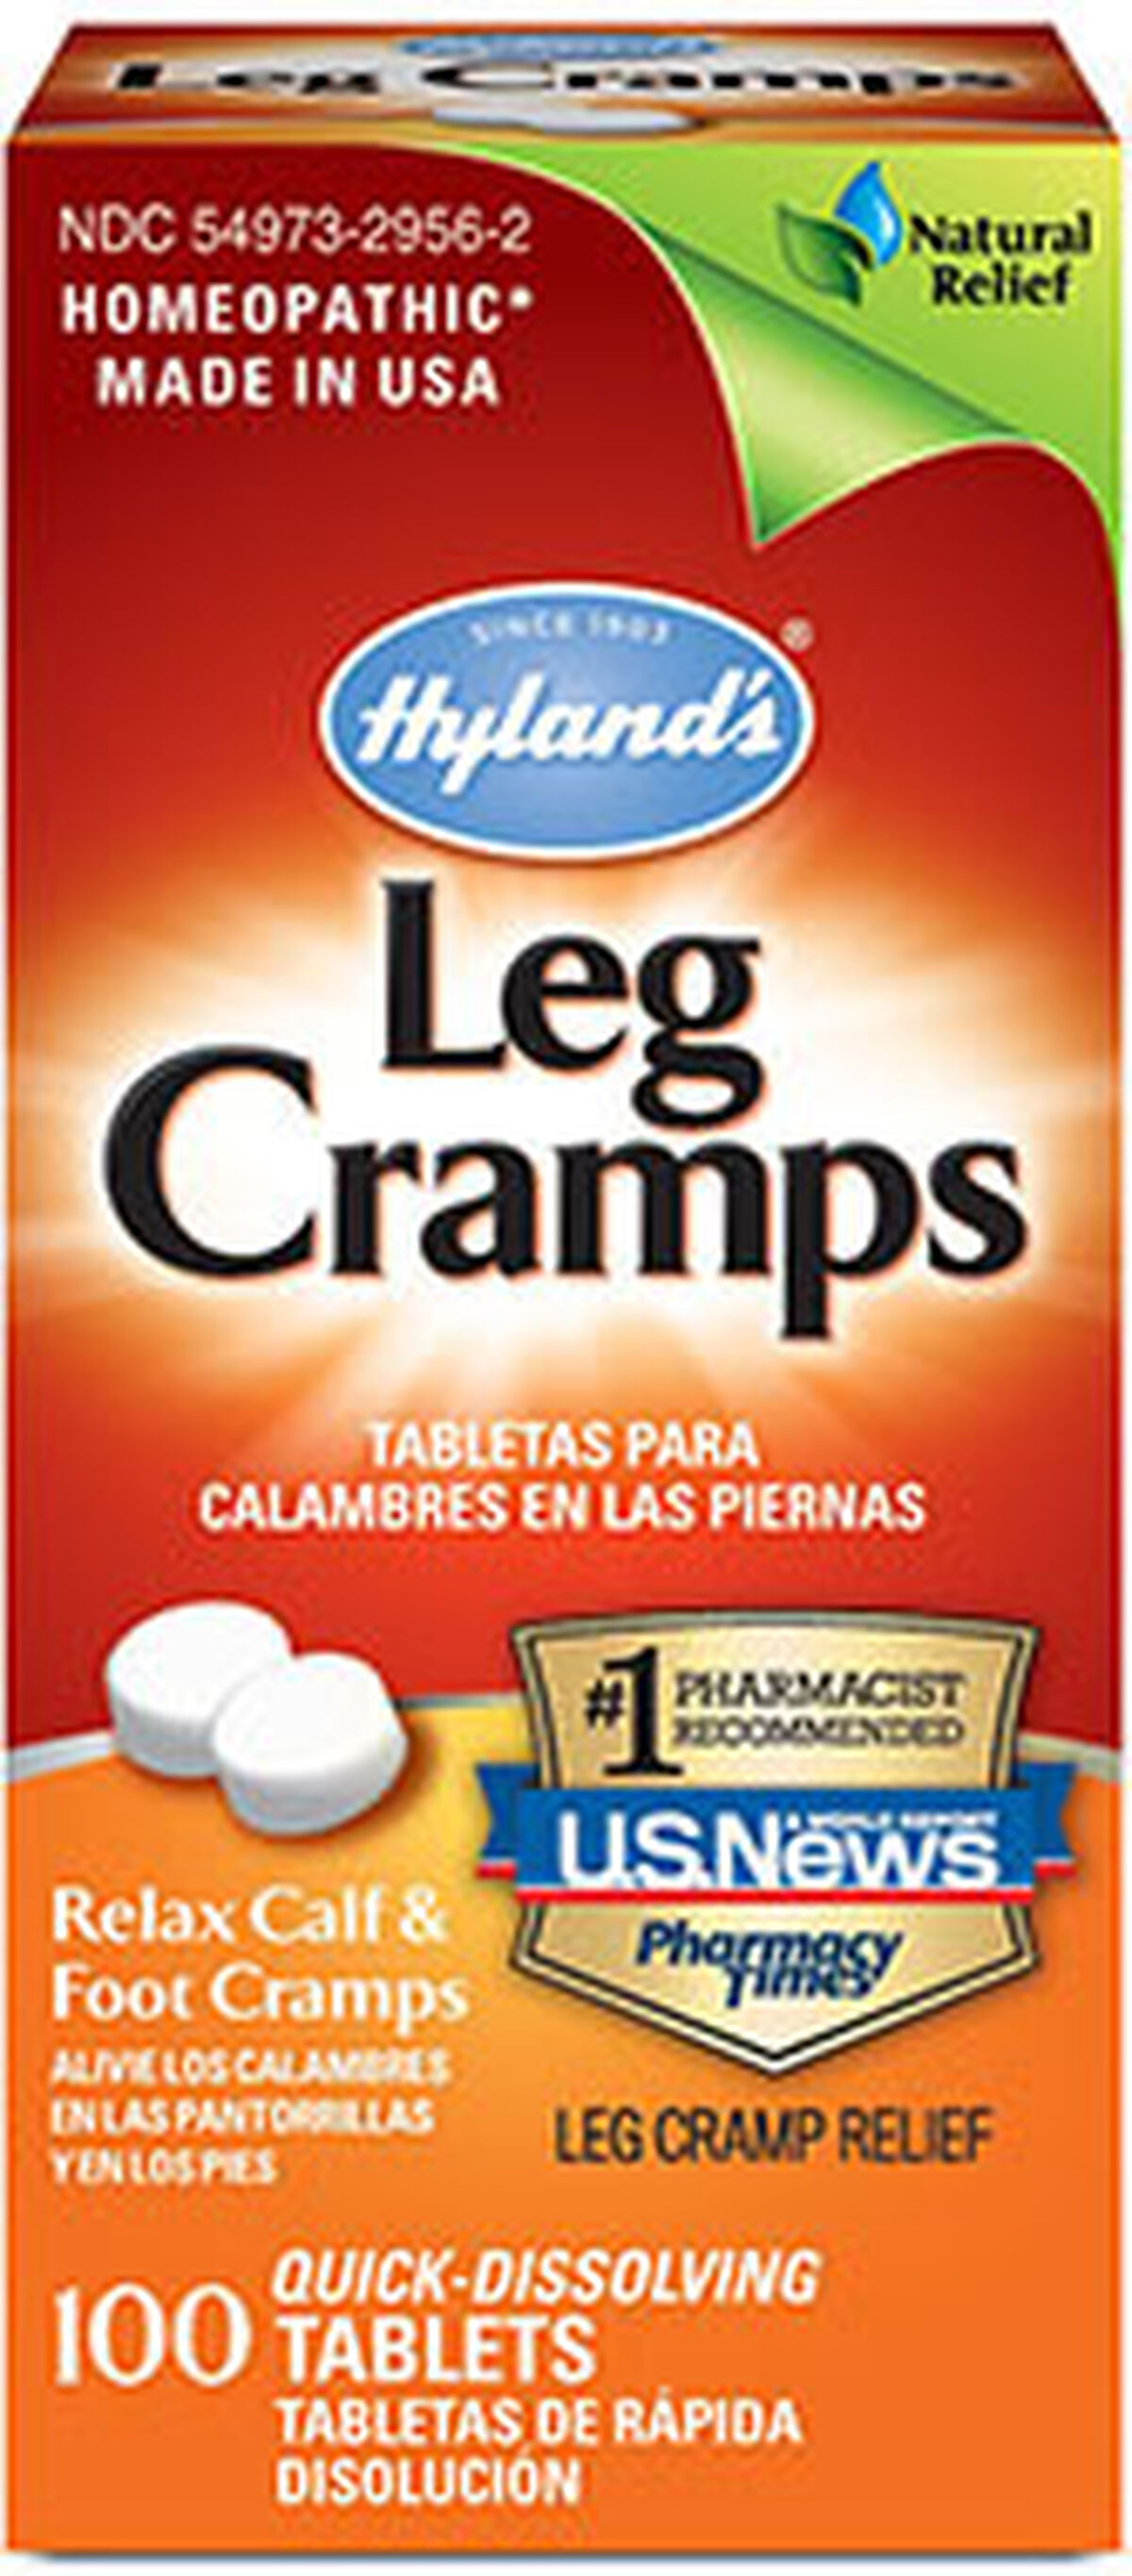 Hyland's Leg Cramps | Vitamin World | Tuggl